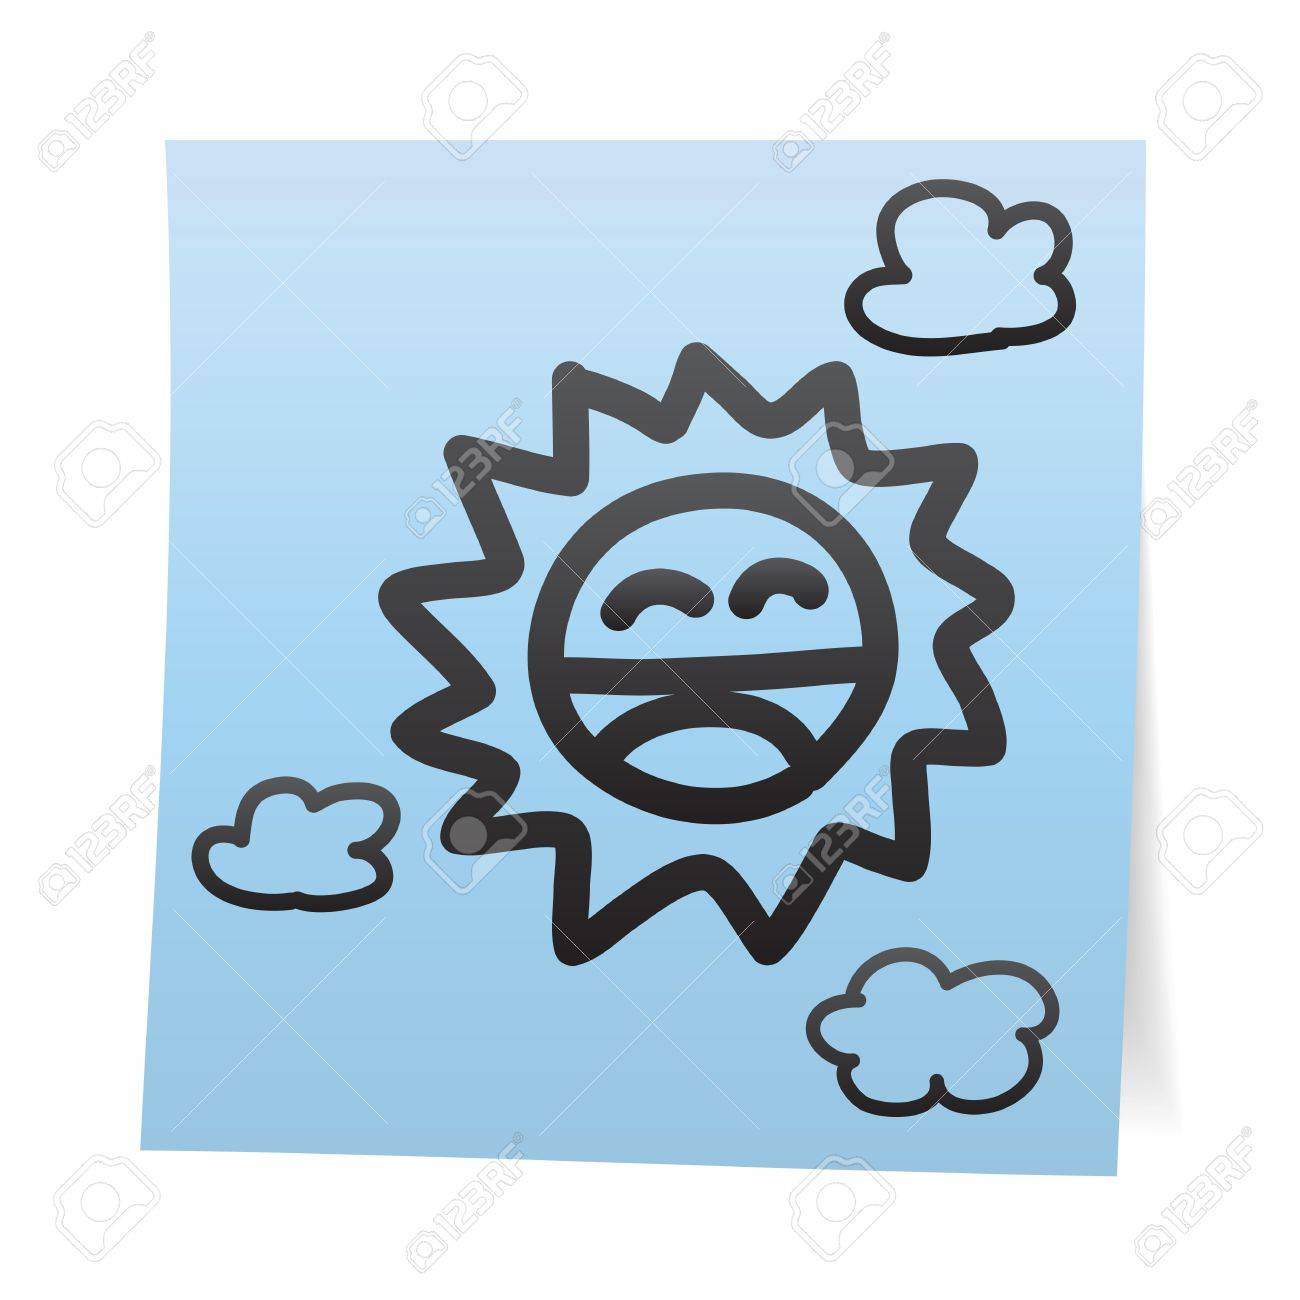 Hand draw cartoon on paper note stickers Stock Vector - 17030985